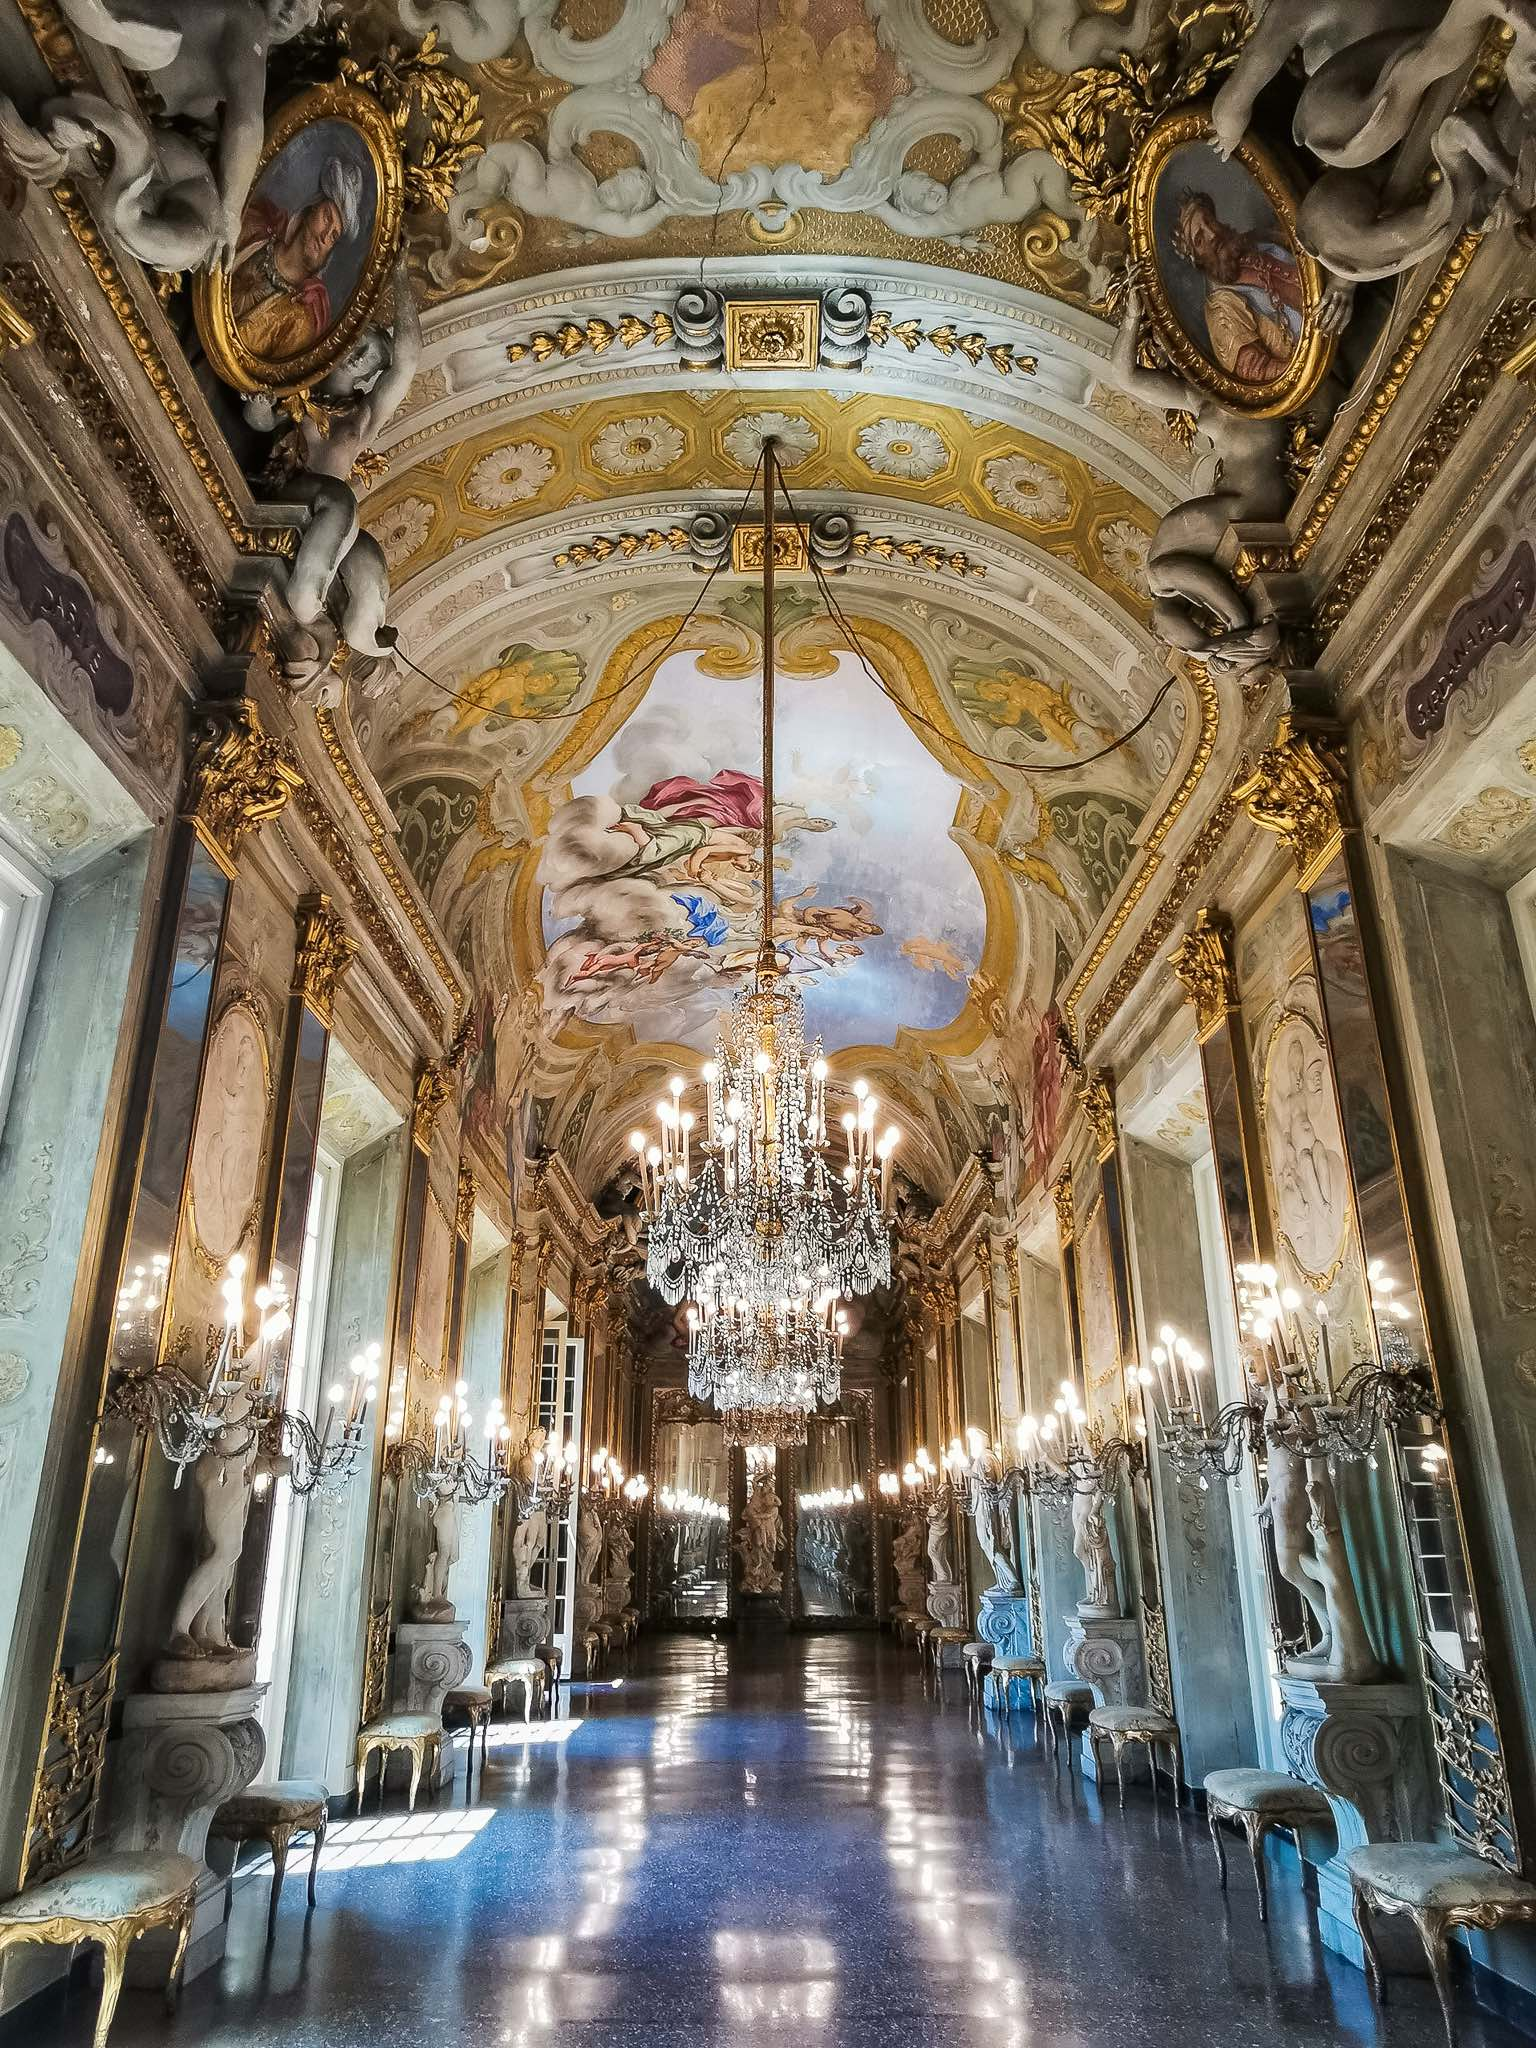 The gorgeous Hall of Mirrors inside the Royal Palace in Genoa